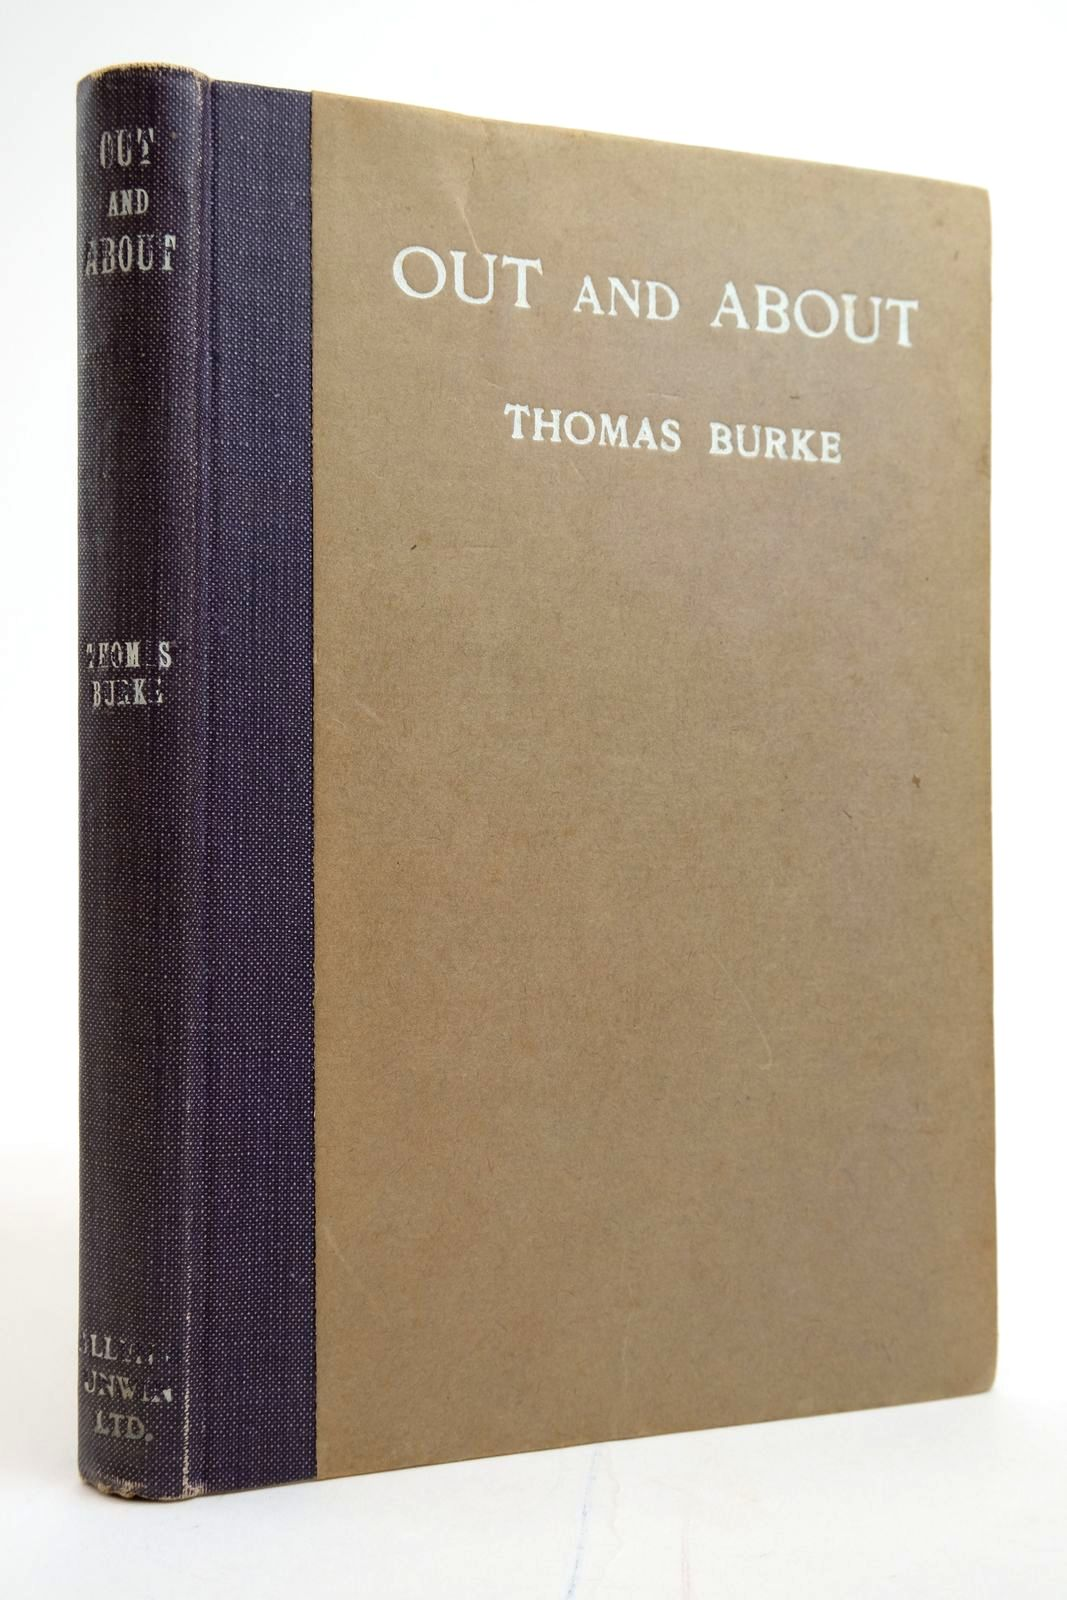 Photo of OUT AND ABOUT A NOTE-BOOK OF LONDON IN WAR-TIME written by Burke, Thomas published by George Allen & Unwin Ltd. (STOCK CODE: 2135183)  for sale by Stella & Rose's Books